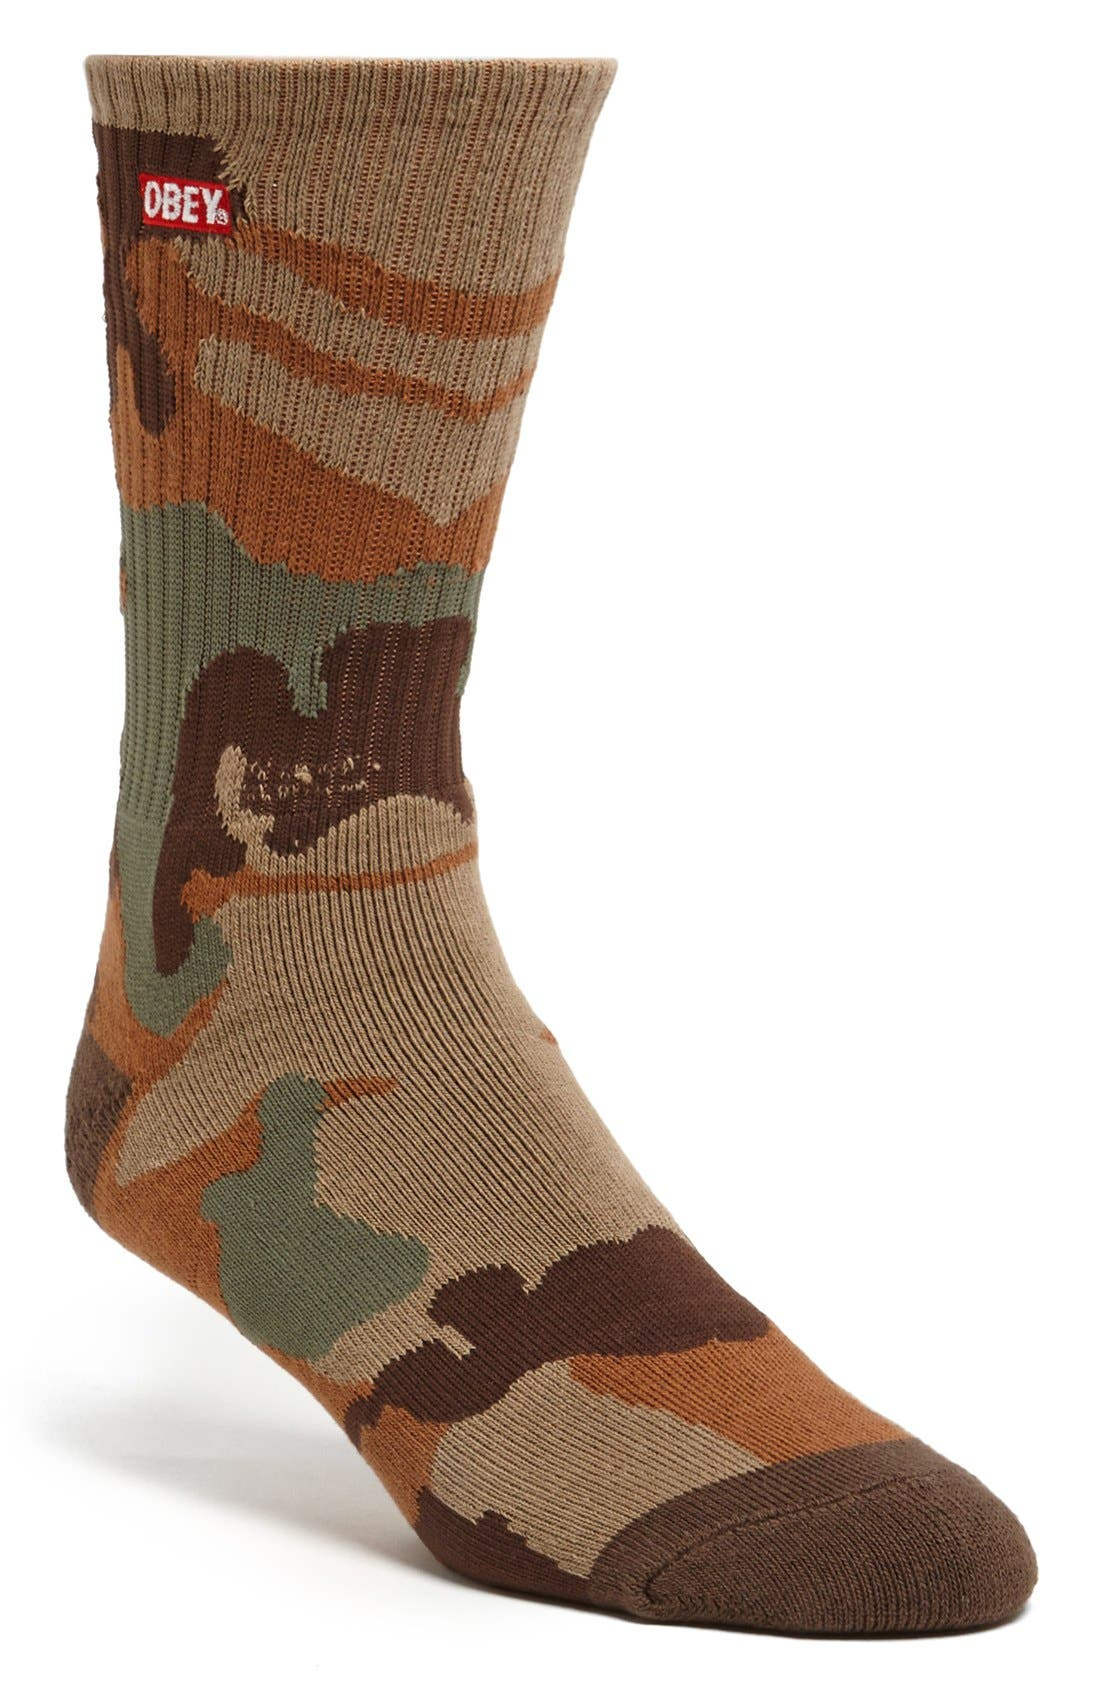 Main Image - Obey 'Quality Dissent' Socks